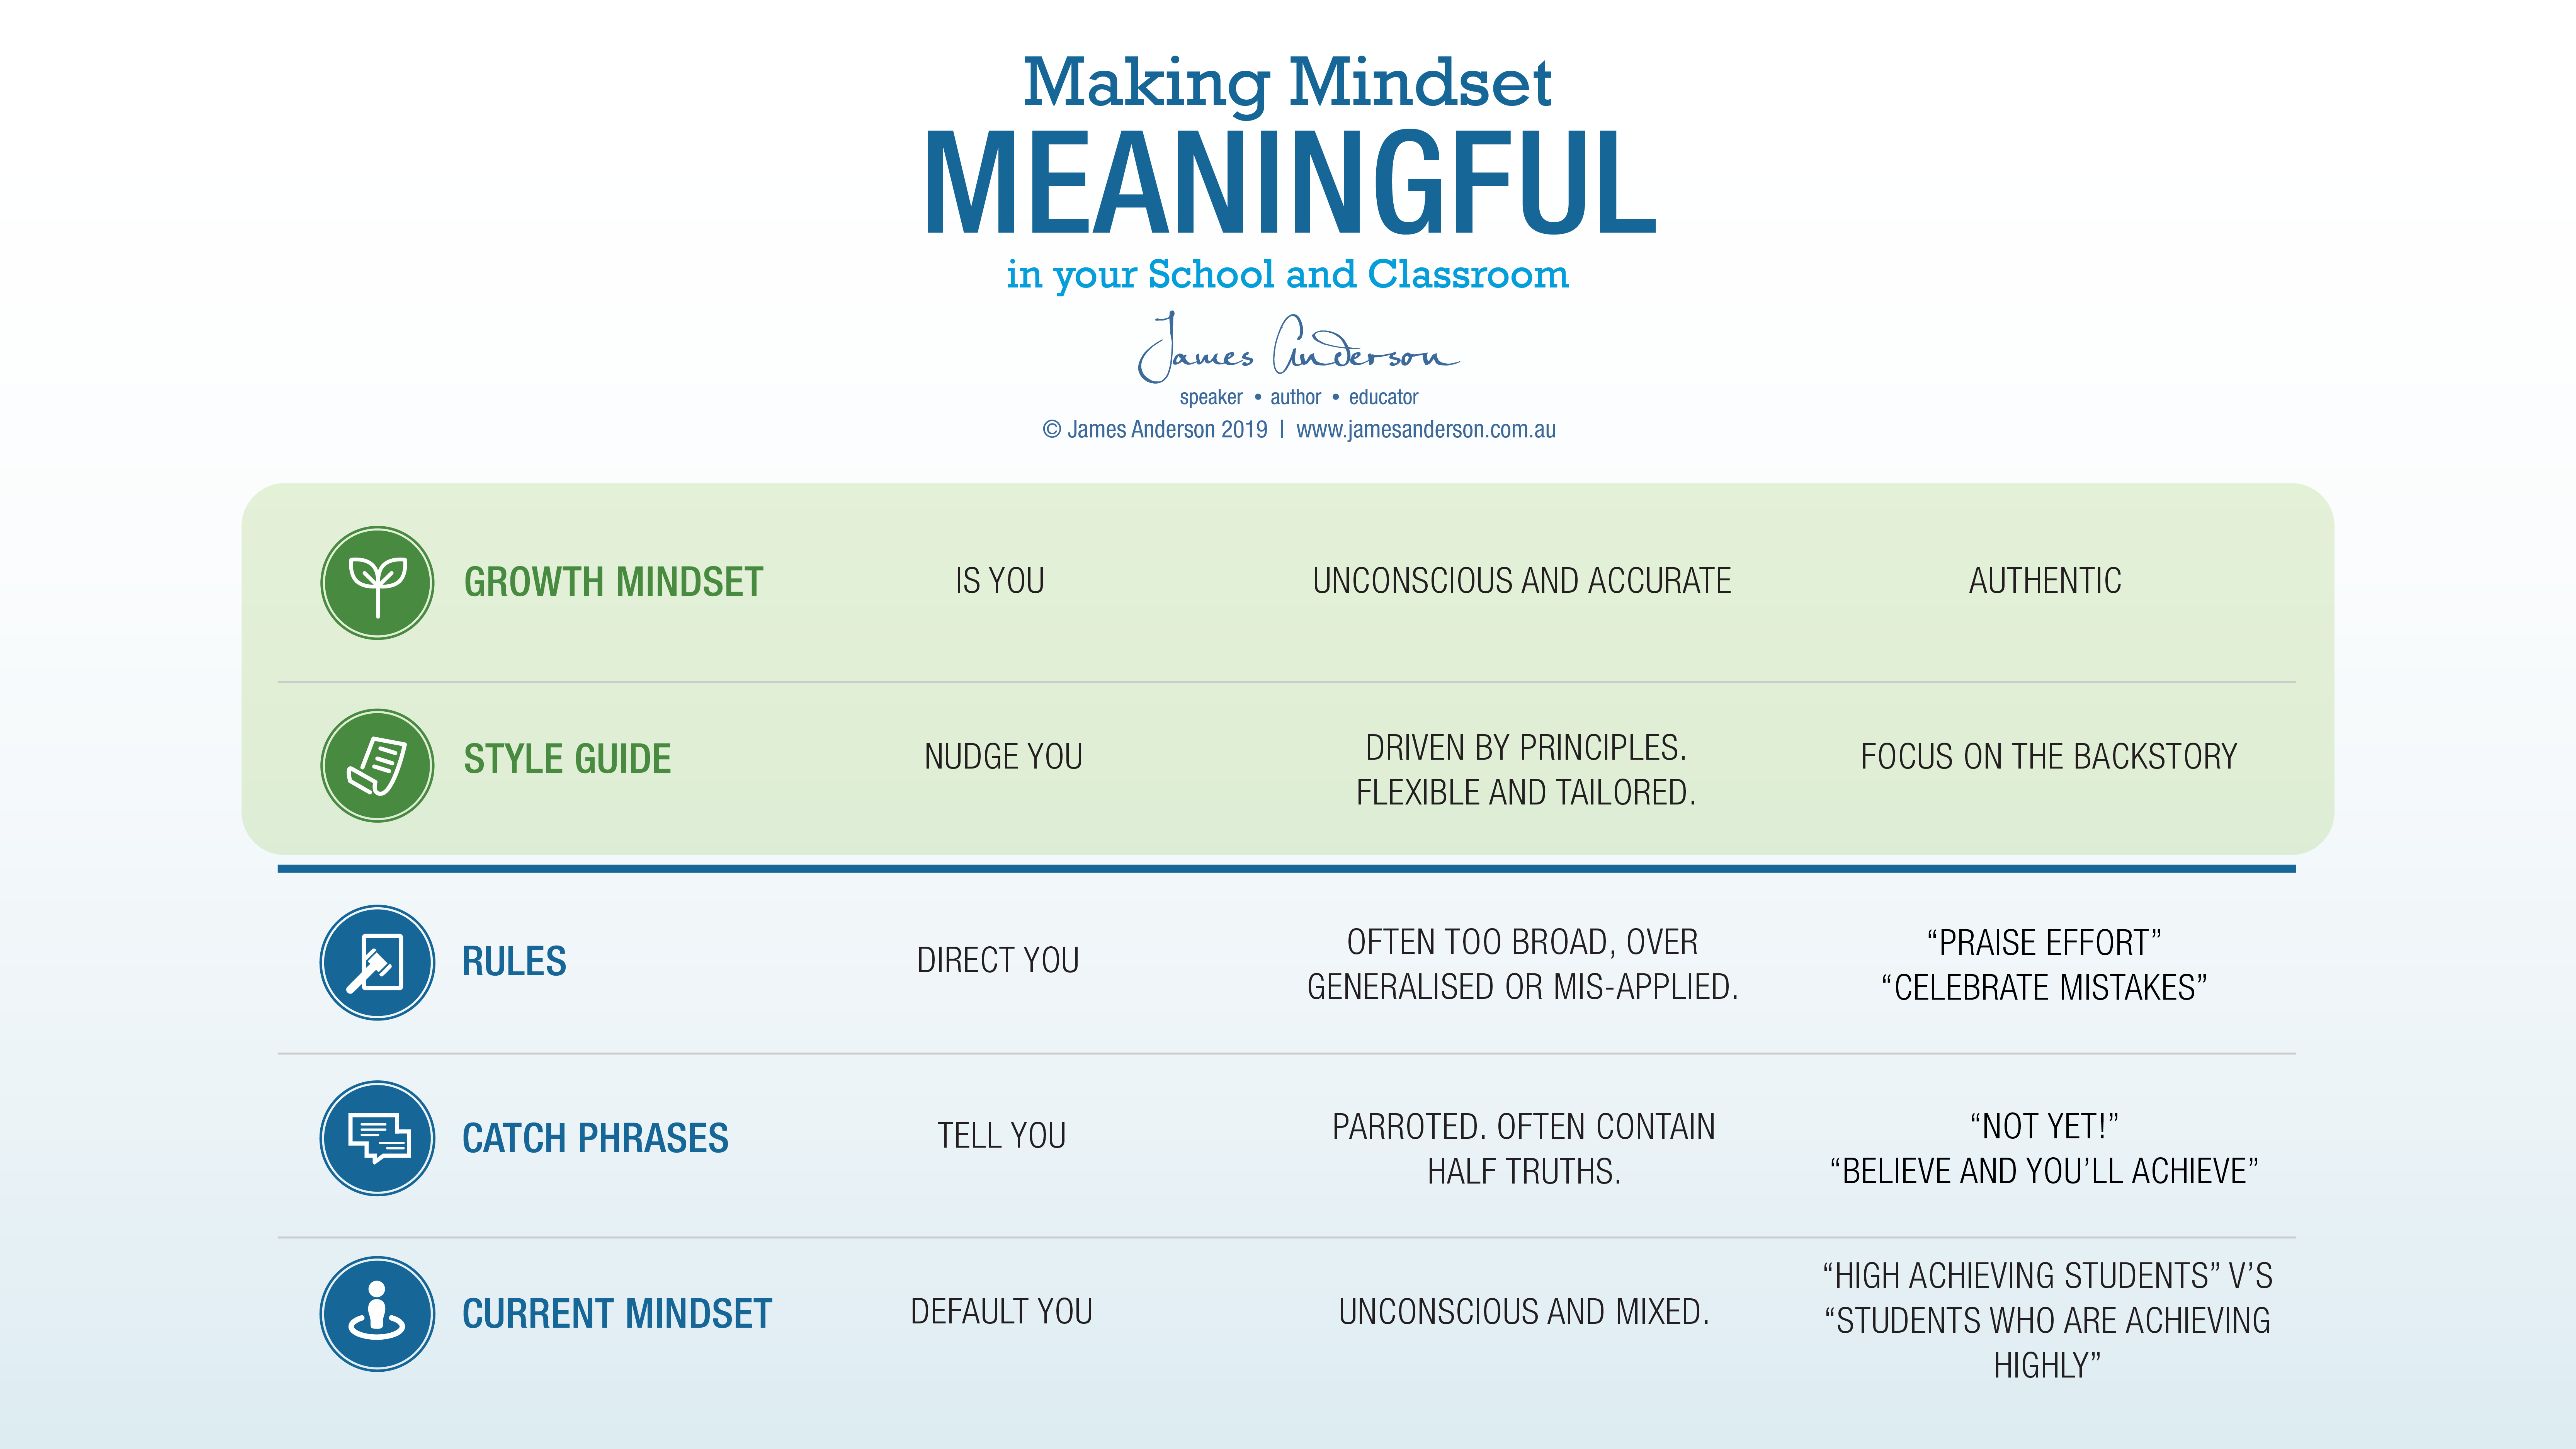 James Anderson's guide to Making Mindset Meaningful in your school and classroom